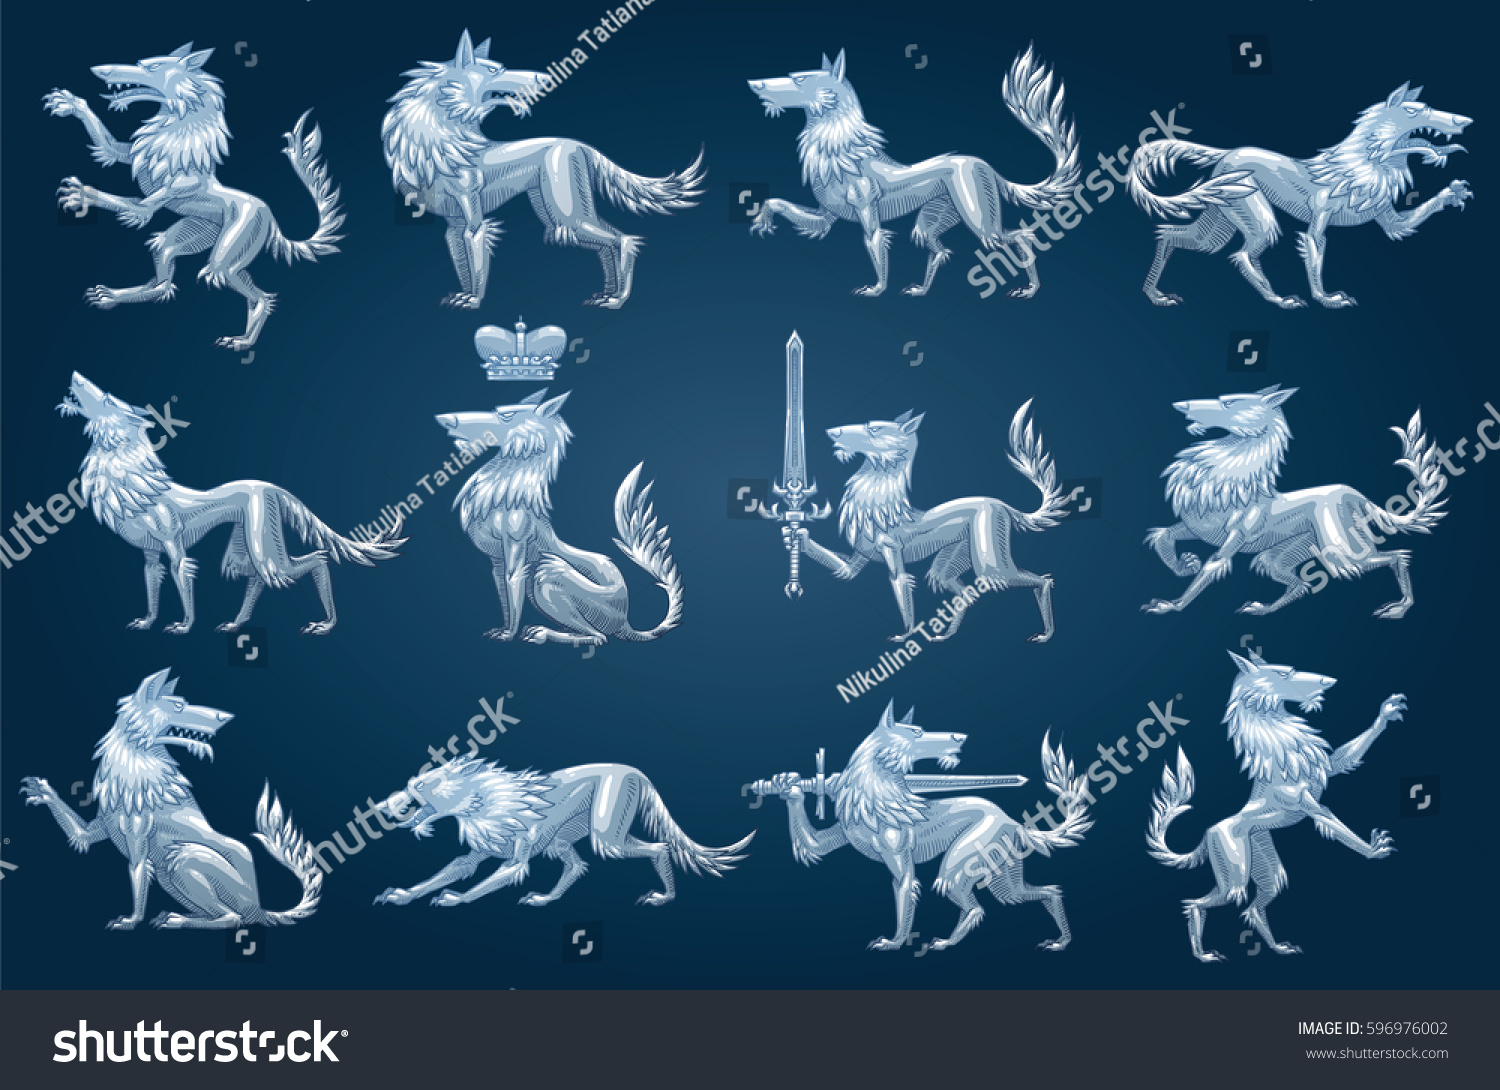 How to breed heraldic dragon - Vector Set Of Twelve Images Of Silver Heraldic Wolves In Different Poses On A Dark Blue